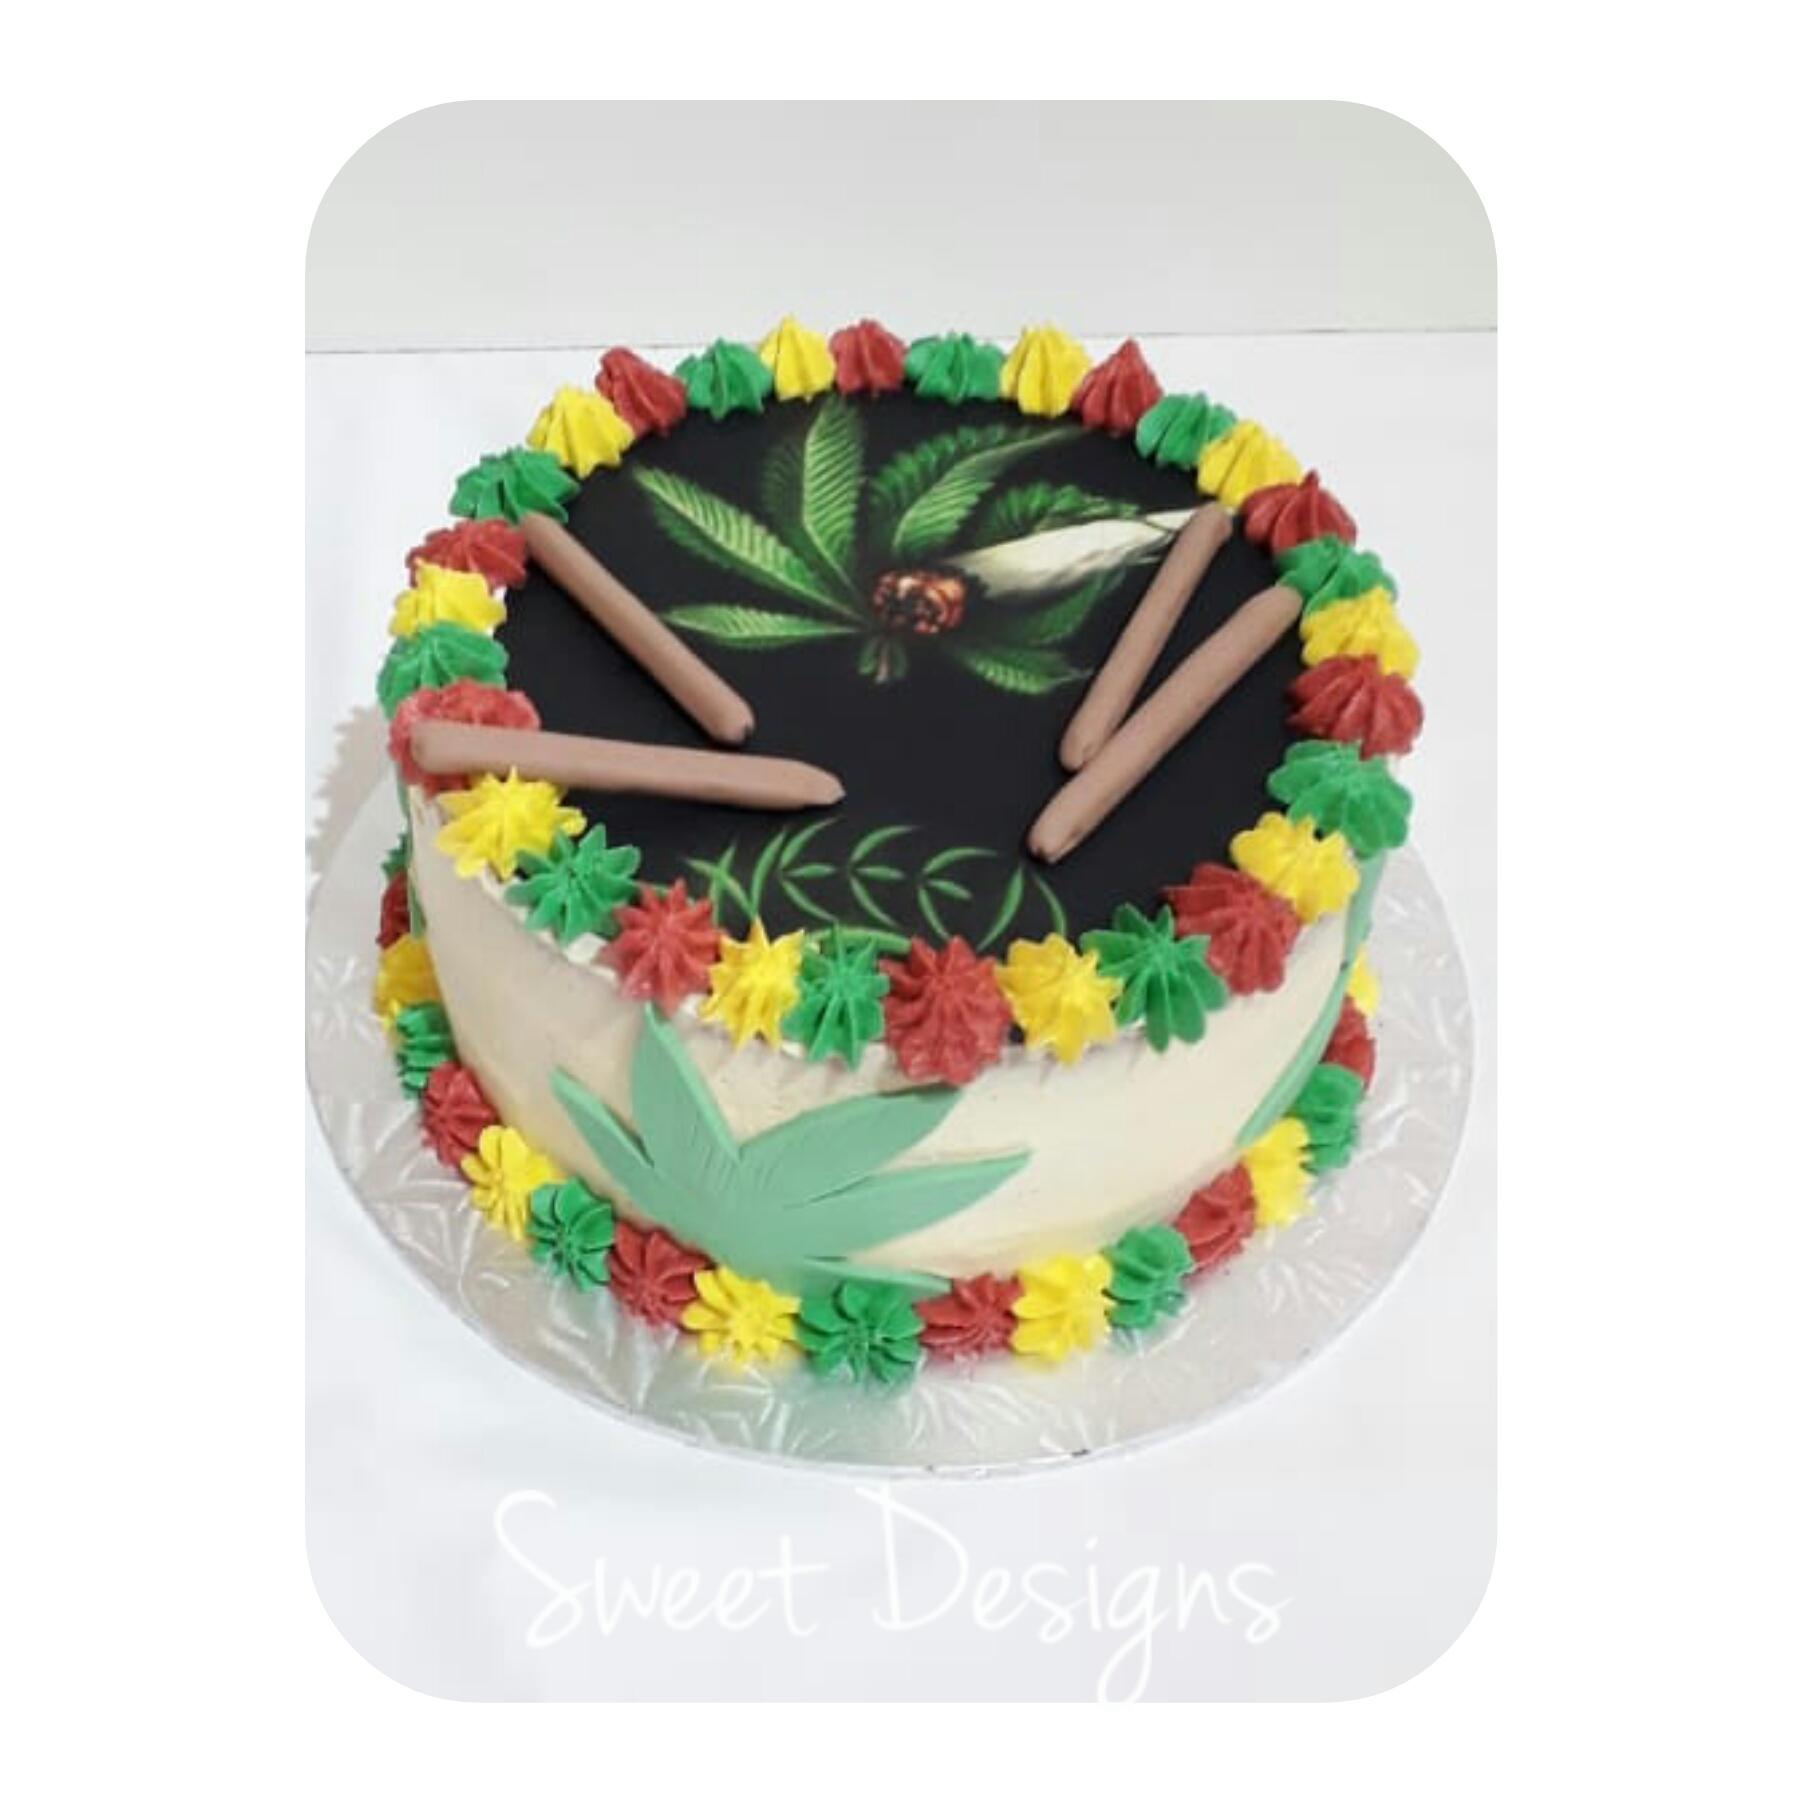 Funny Buttercream weed image Cake